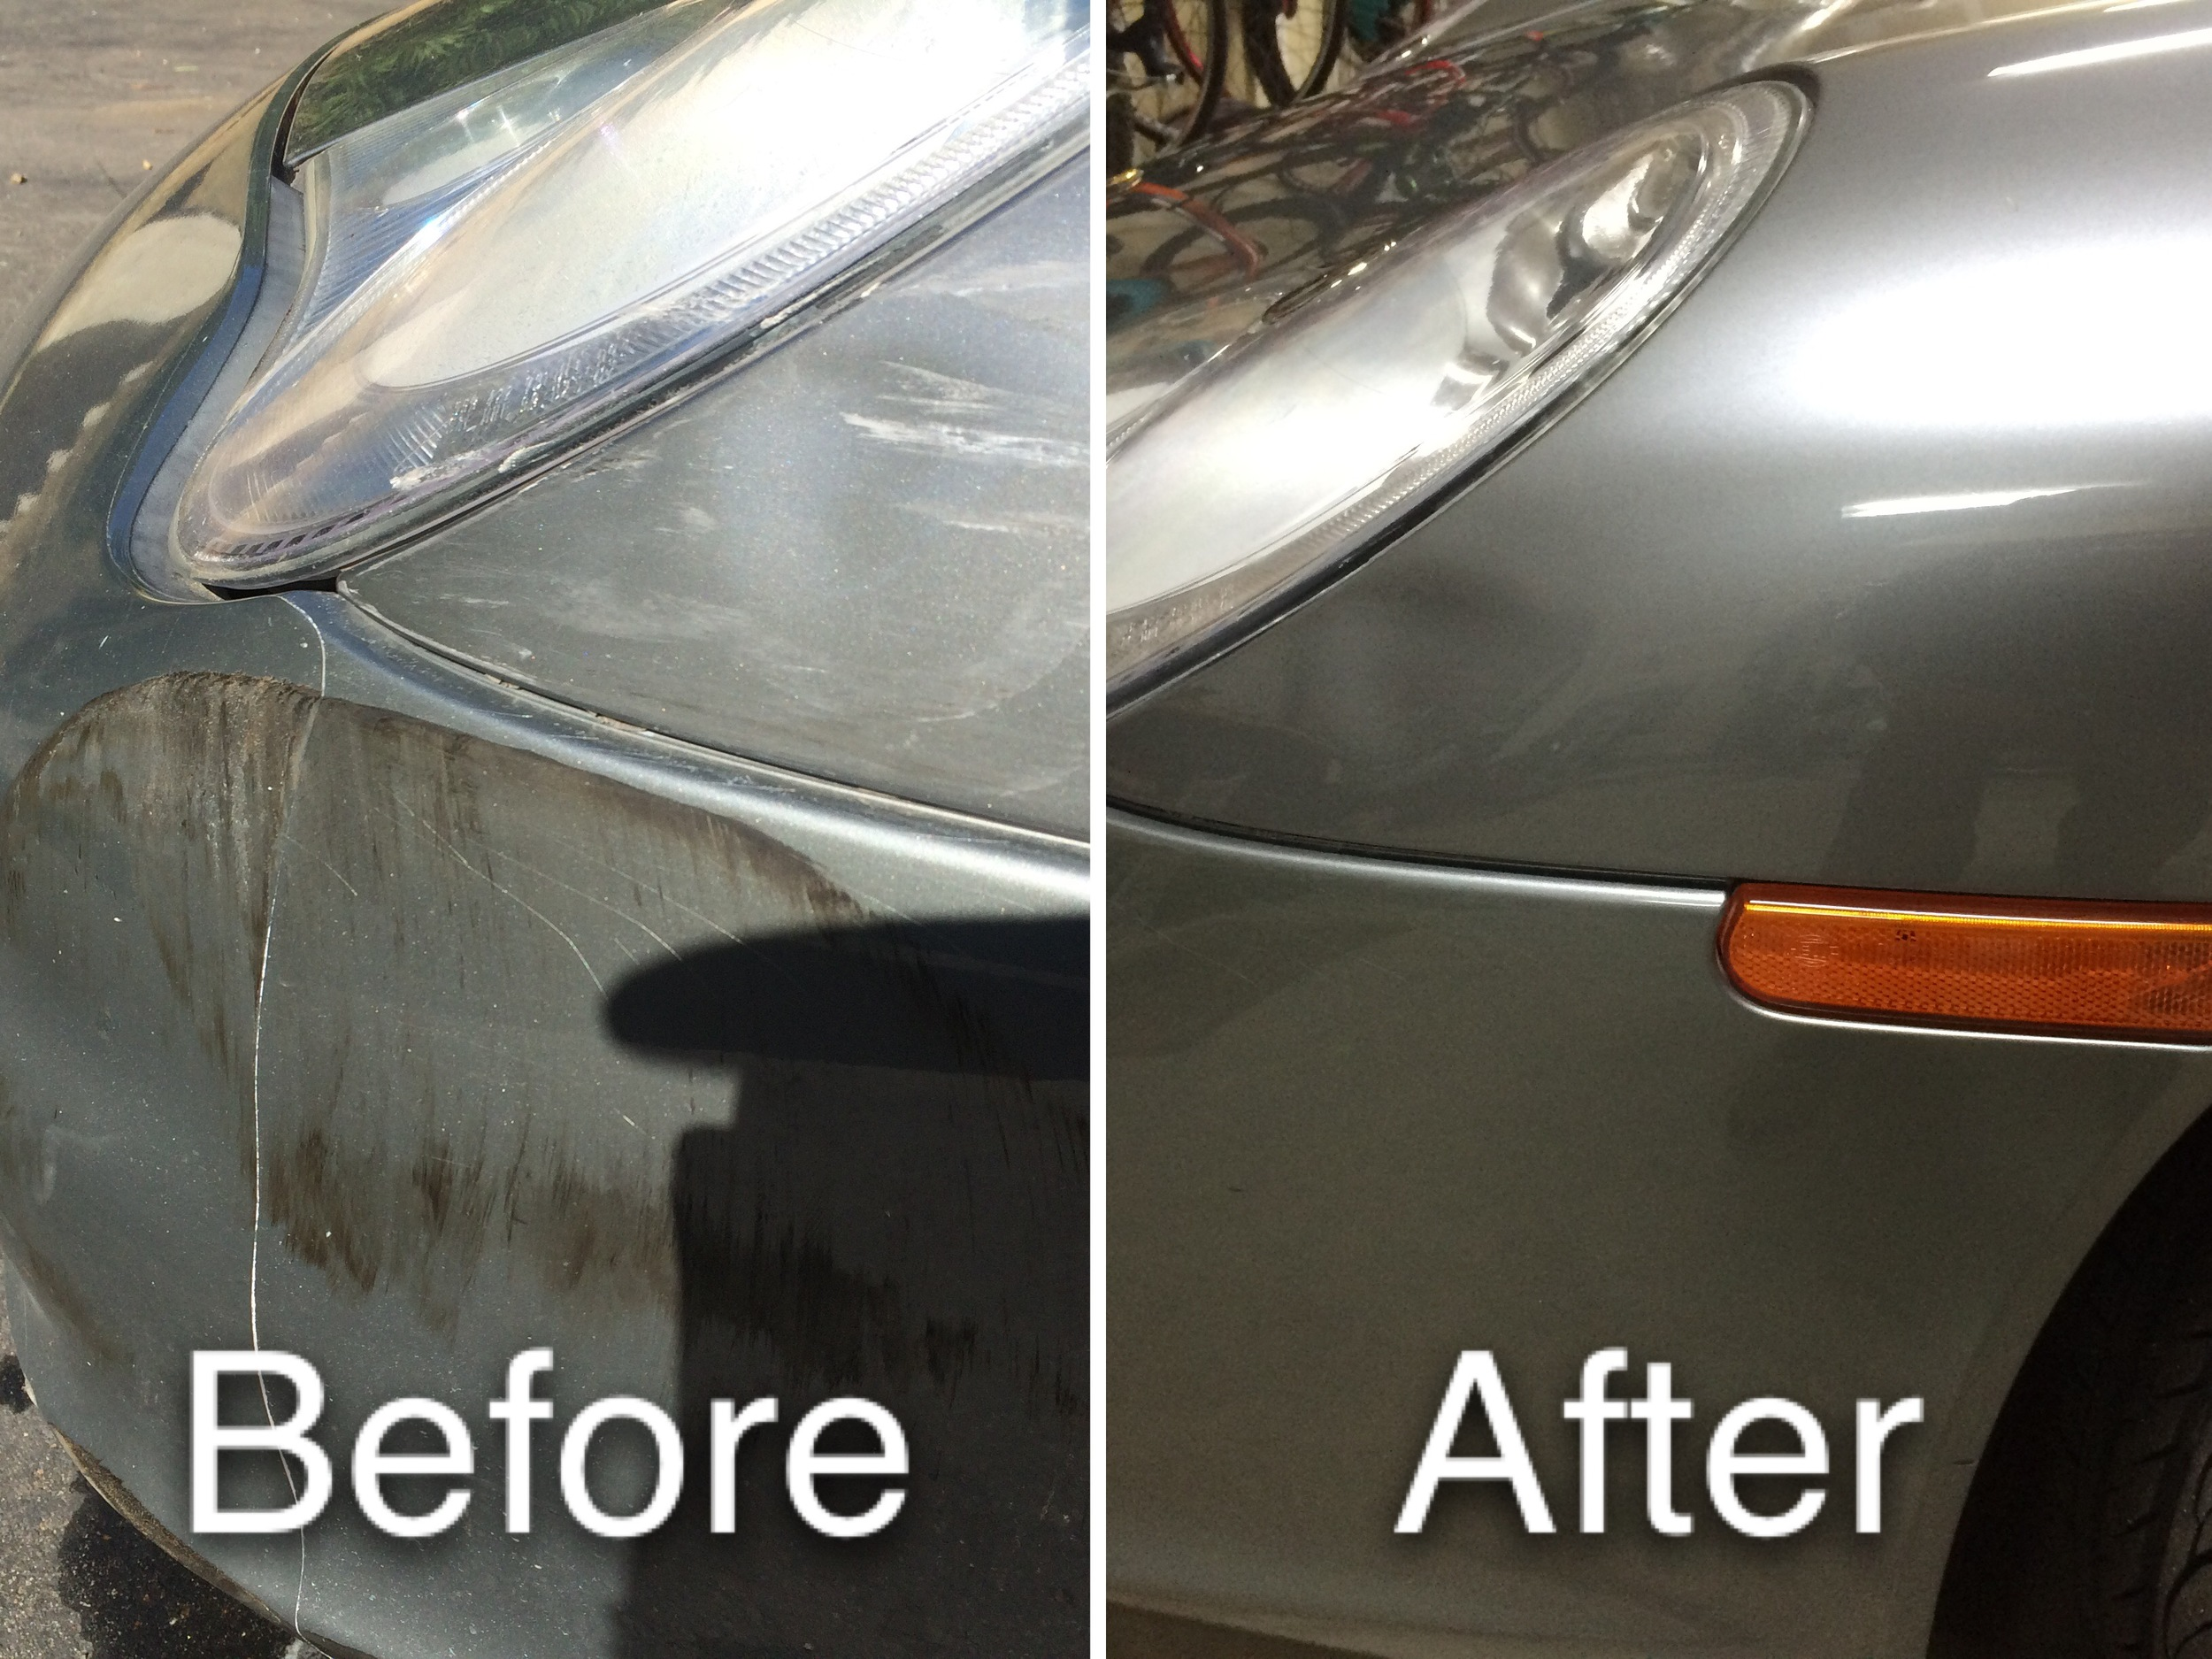 Foreign paint and rubber marks were removed using our Flex polisher with a medium cut polish.